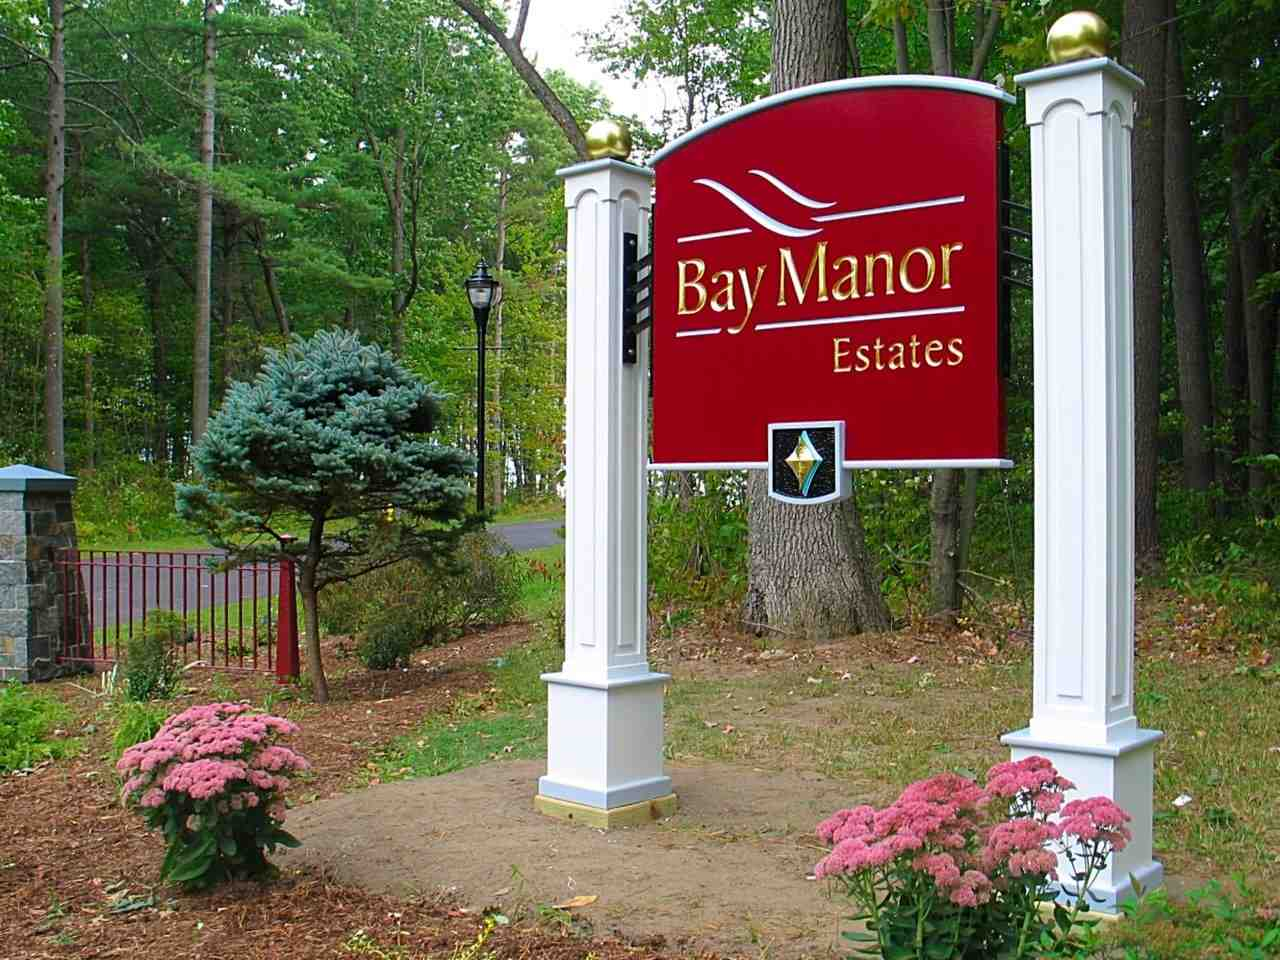 1.51 acre lot in fabulous lakefront, 9-lot subdivision - Bay Manor Estates on Lake Champlain in Colchester. 140 feet of lakeshore - sandy beach, seawall and cement stairs all in place. Town water, septic design, power and natural gas. Beautiful westerly views of the Adirondacks. The right spot to build your dream home and enjoy all the seasons that Vermont has to offer!